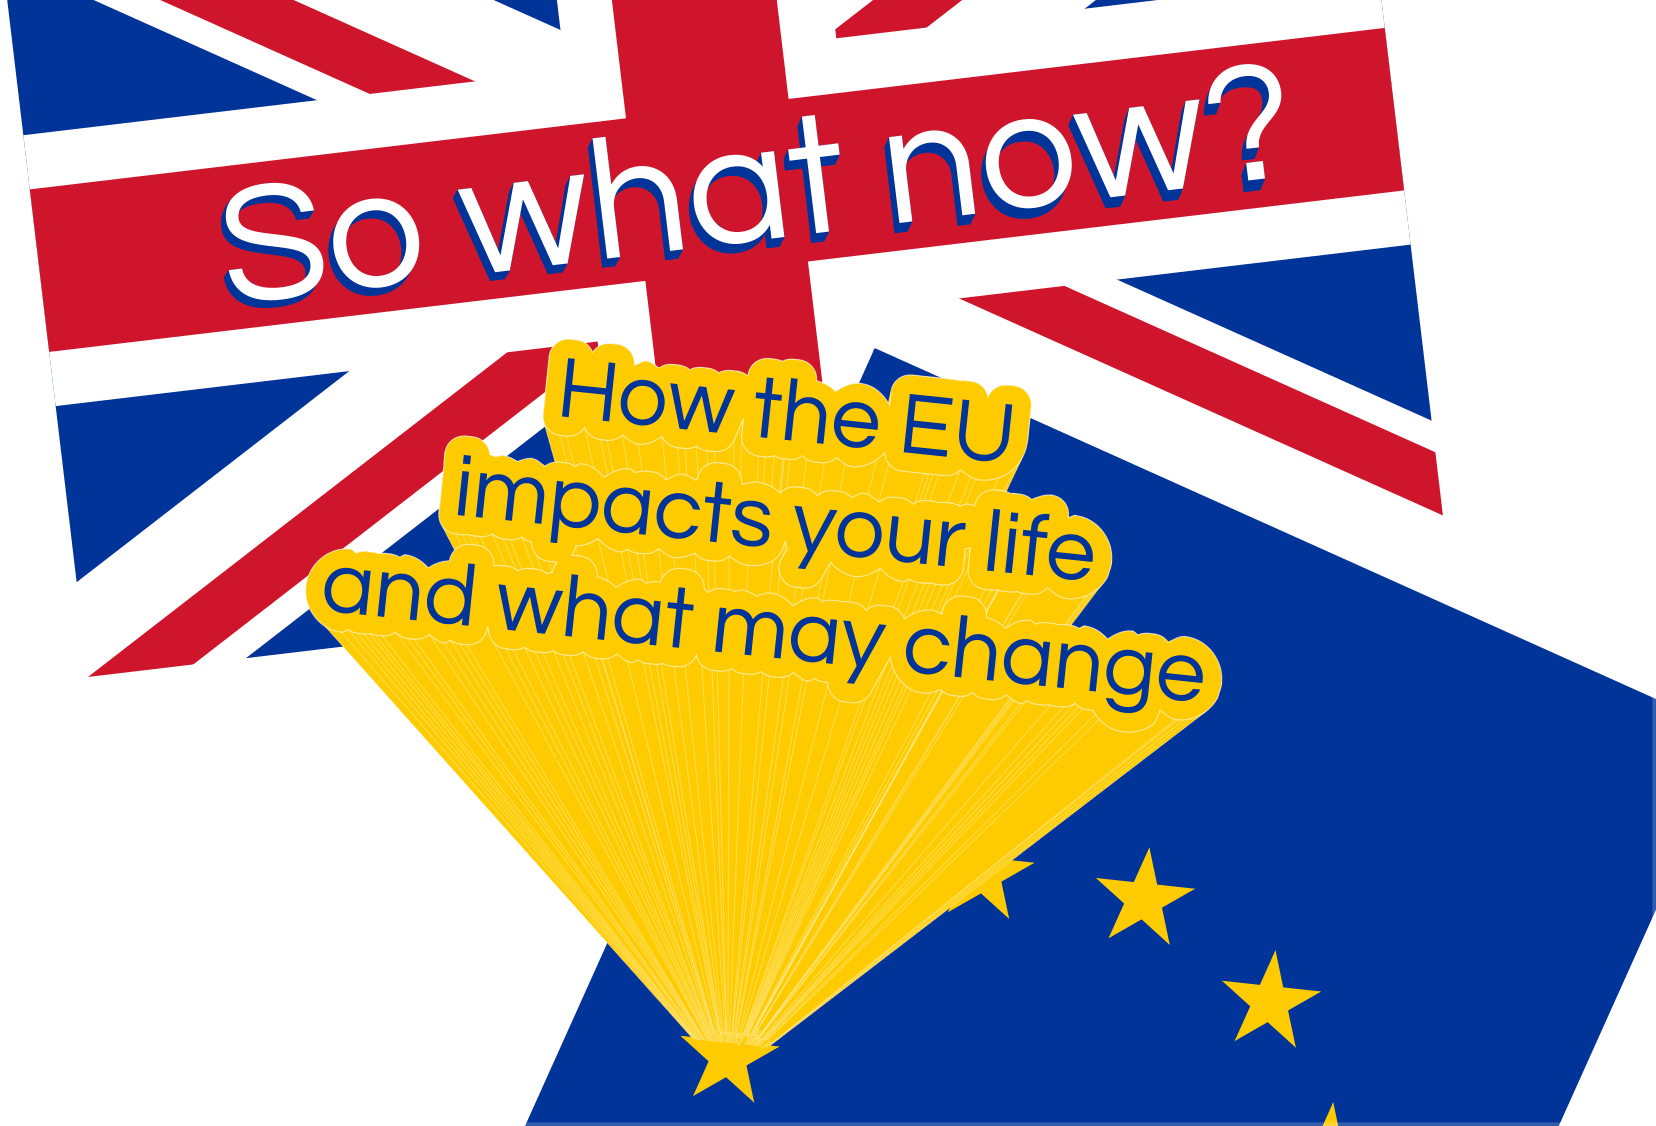 So what now? How the EU affects your life and what may change